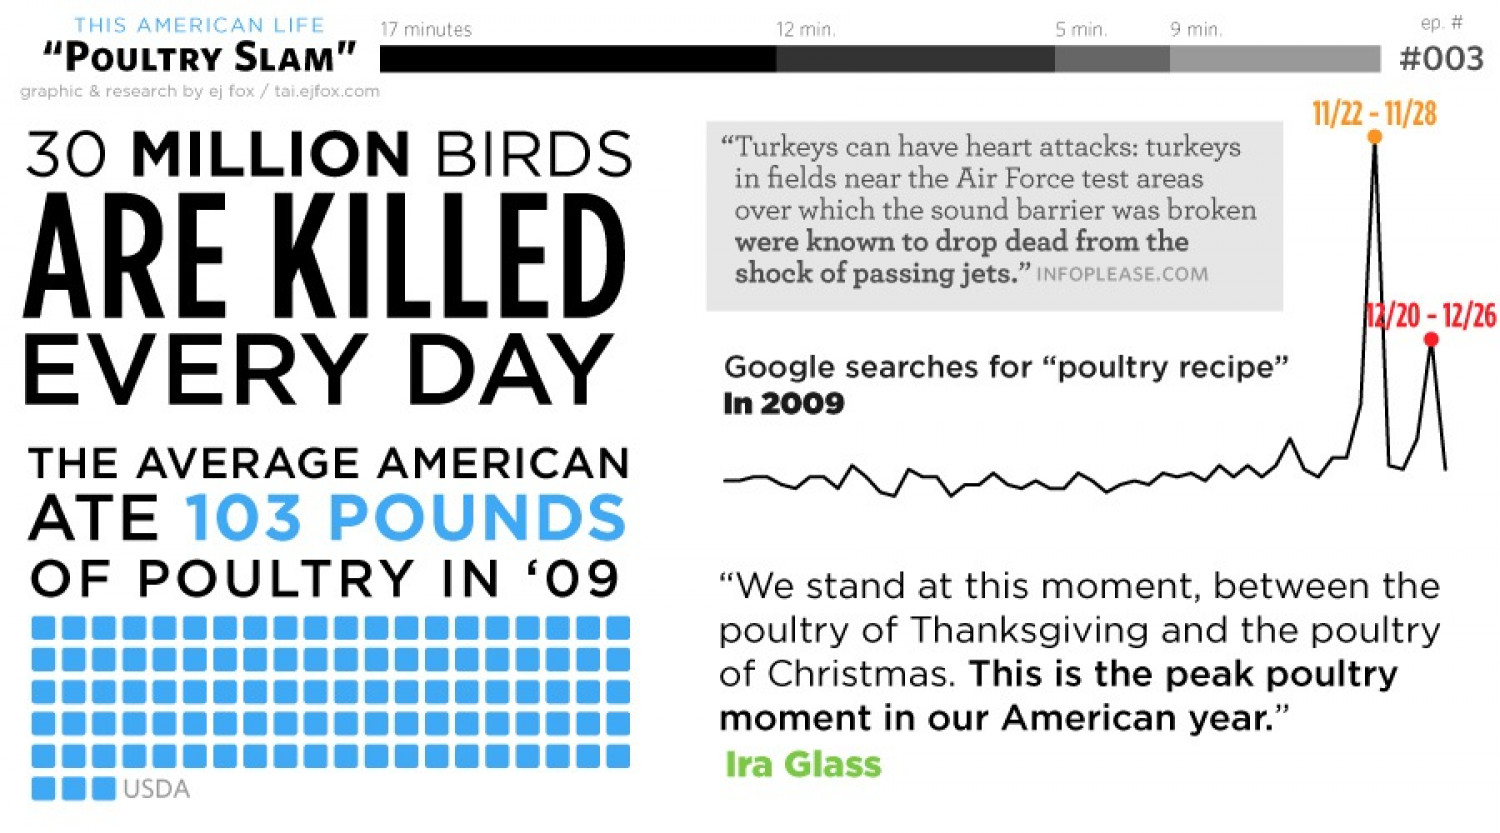 Poultry Slam: American Consumption of Birds Infographic